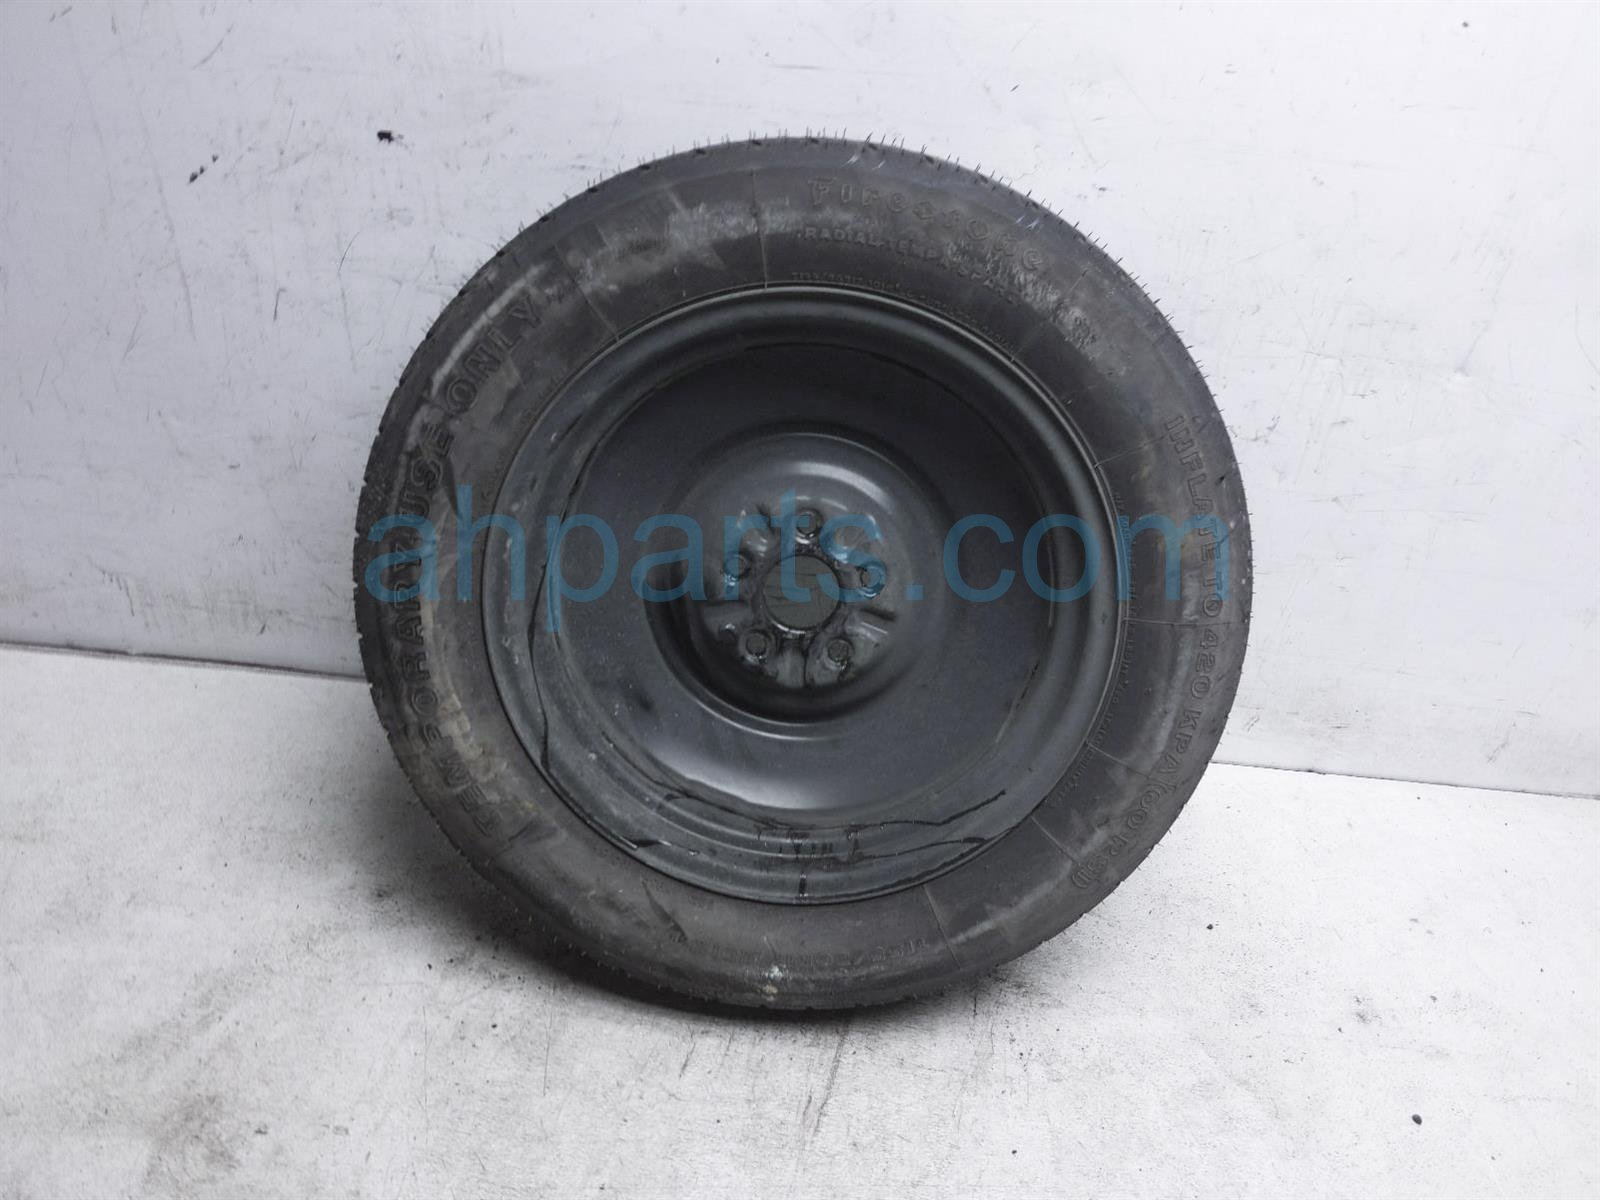 2013 Toyota Sienna Rim Firestone 155 80 17 Spare Wheel 42611 08111 Replacement